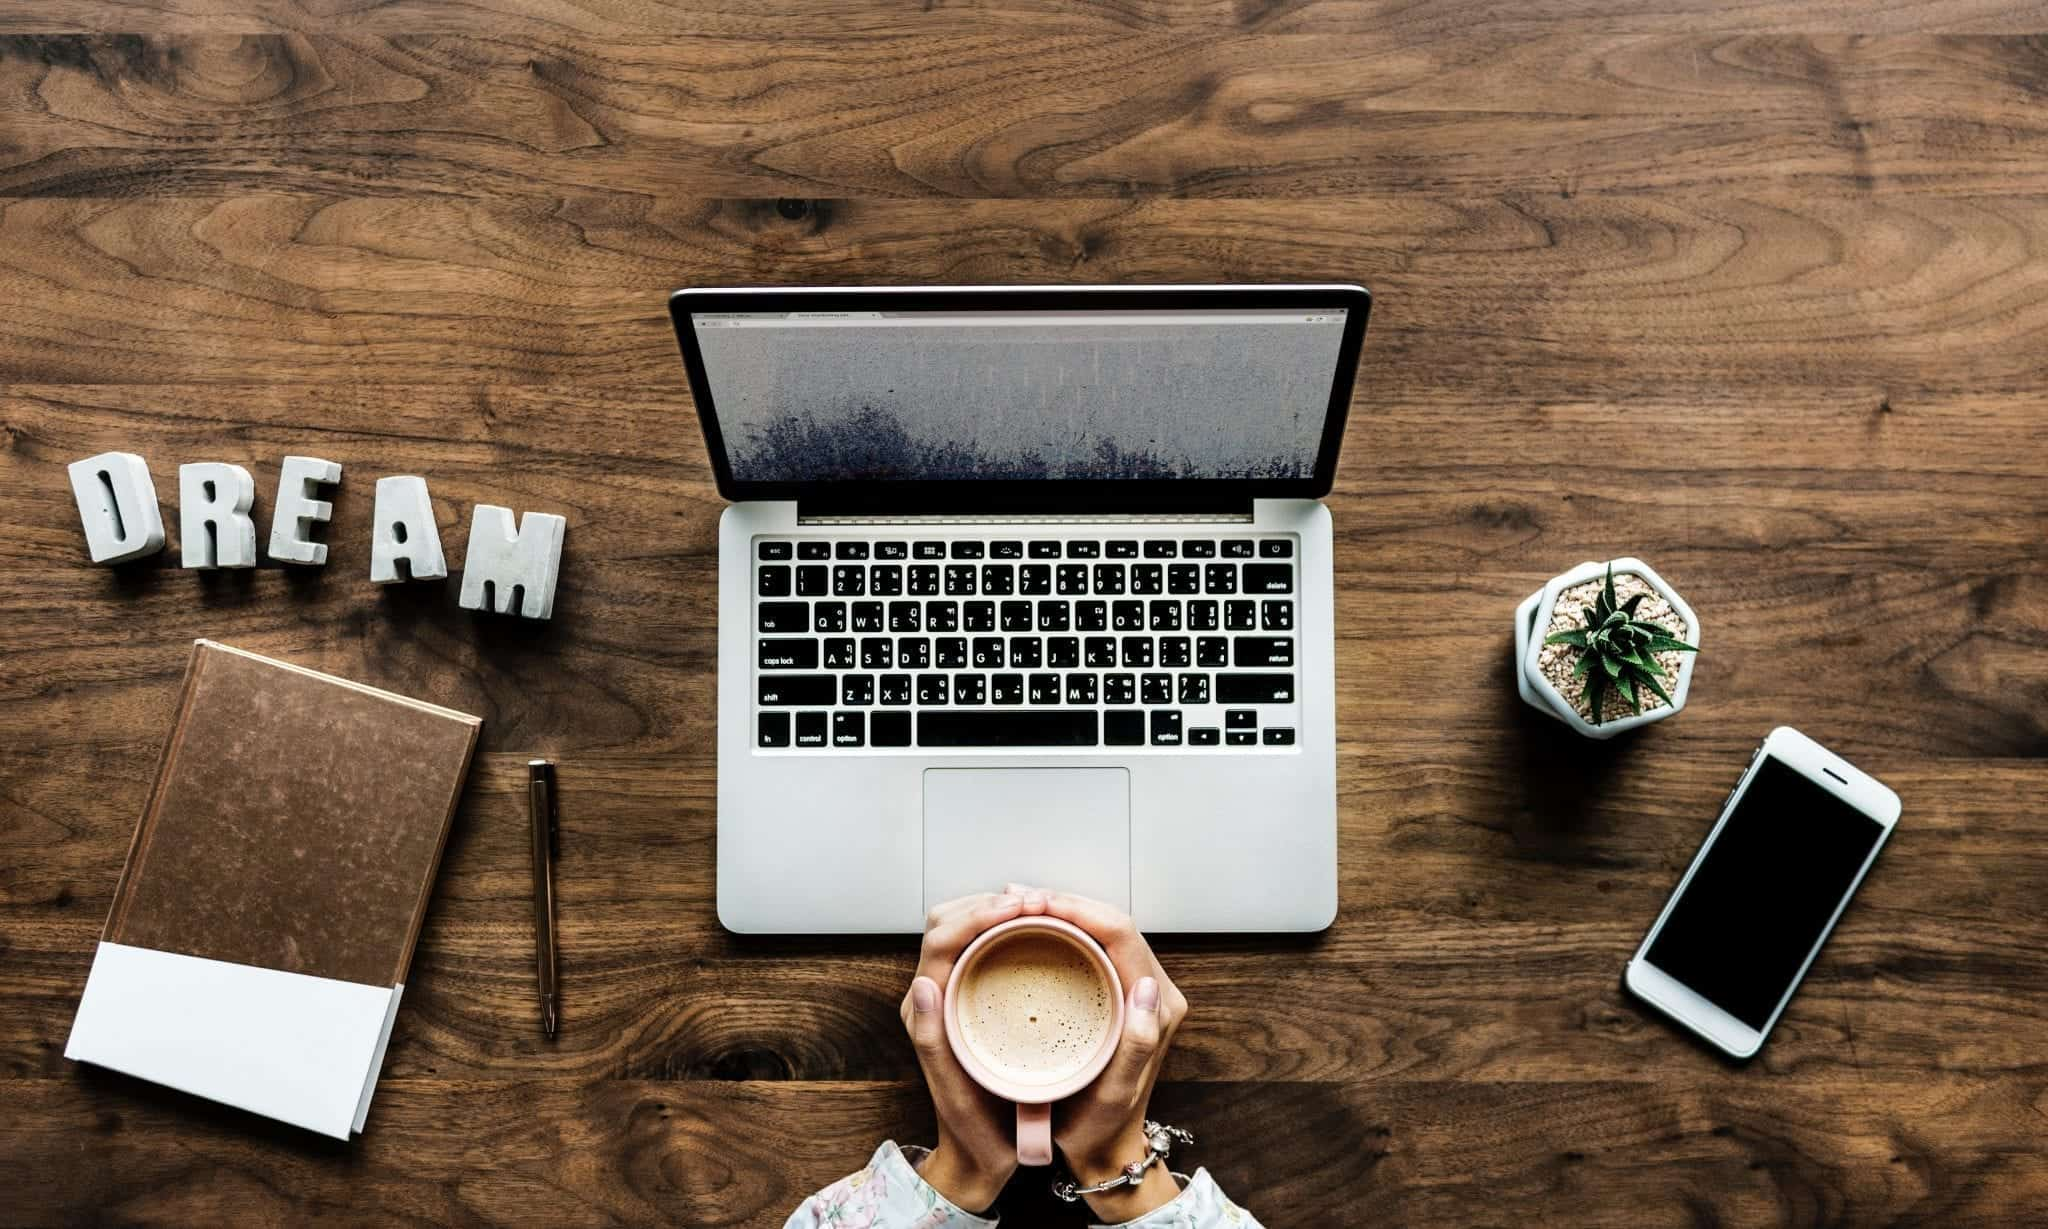 """Woman sitting at table with laptop, coffee, and a sign saying """"Dream;"""" image by Rawpixel, via Unsplash.com."""